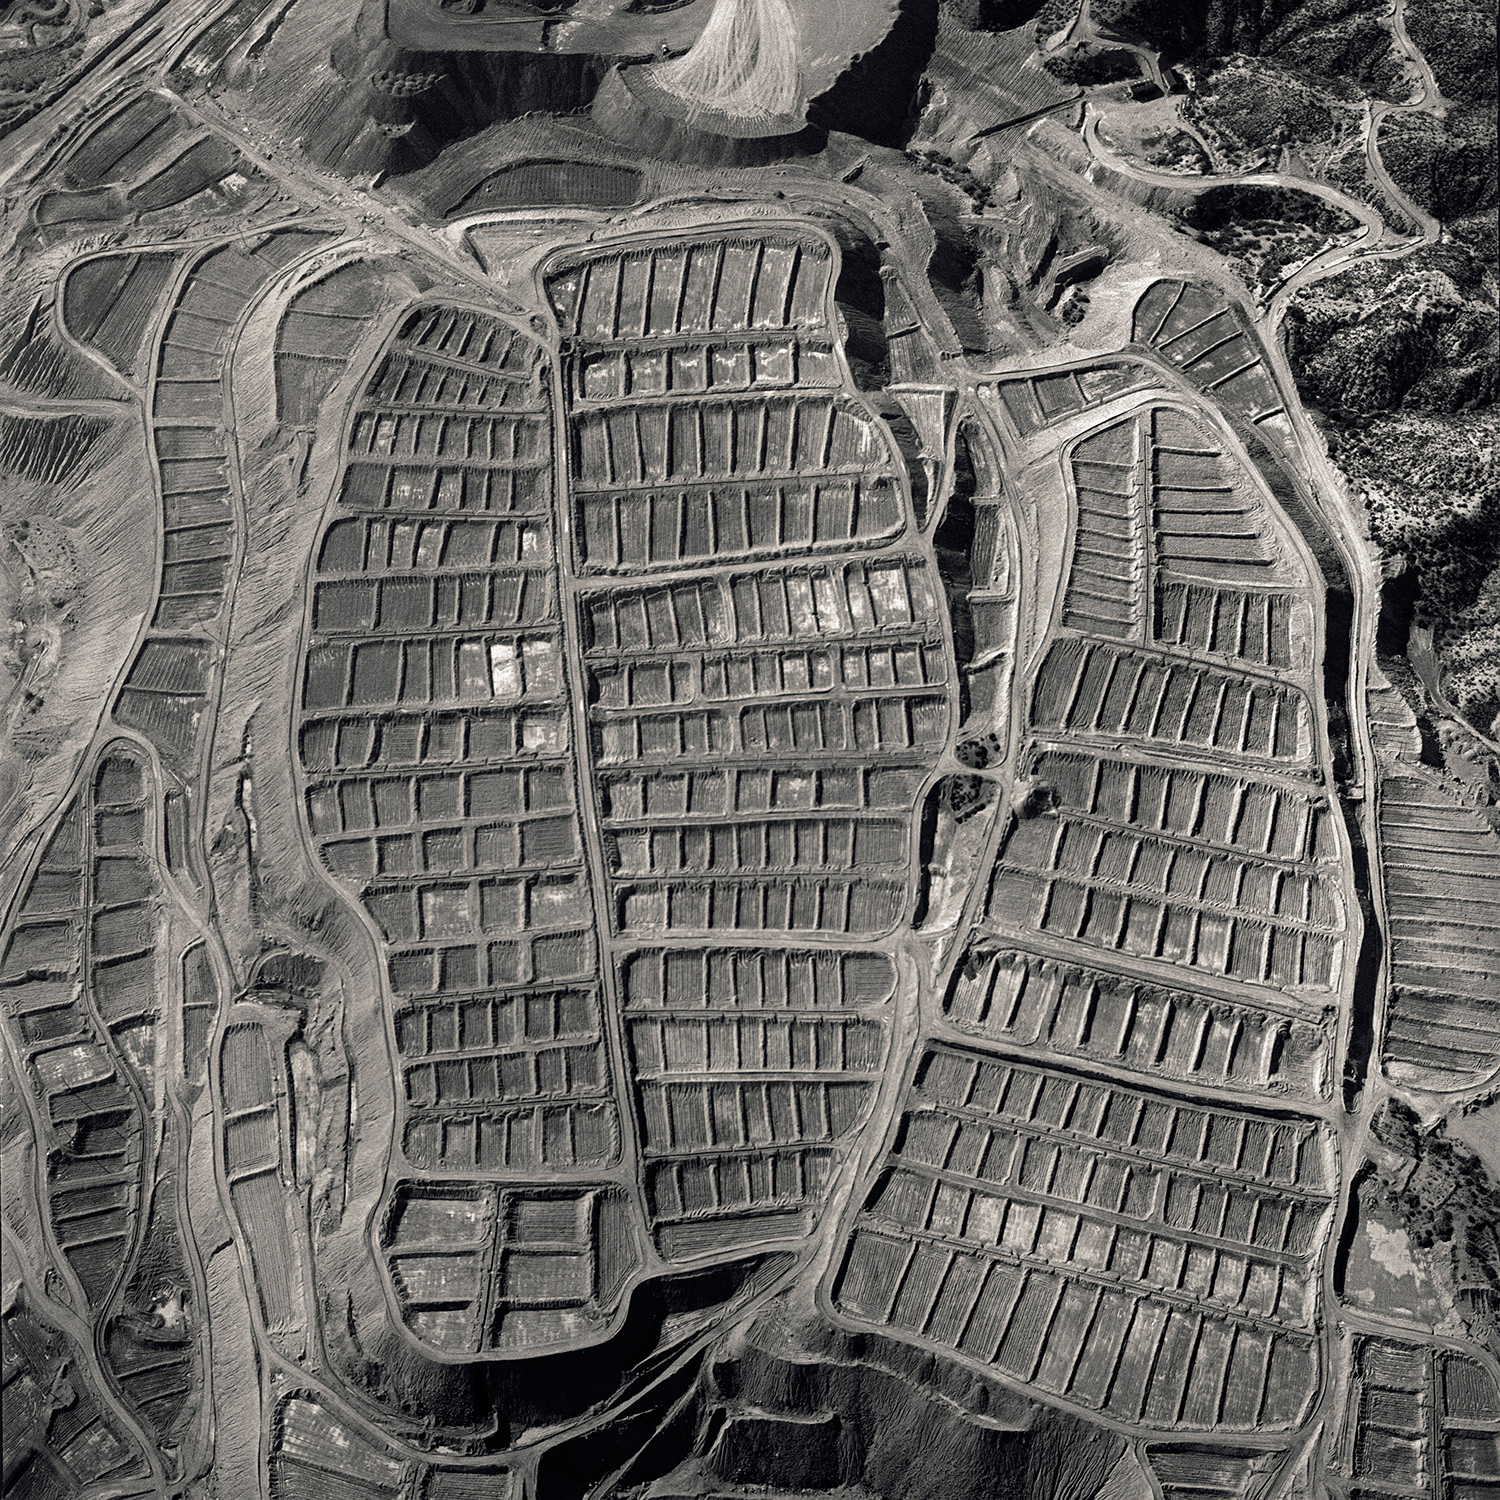 David Maisel, Black Maps (Ray, Arizona 1), 1985.